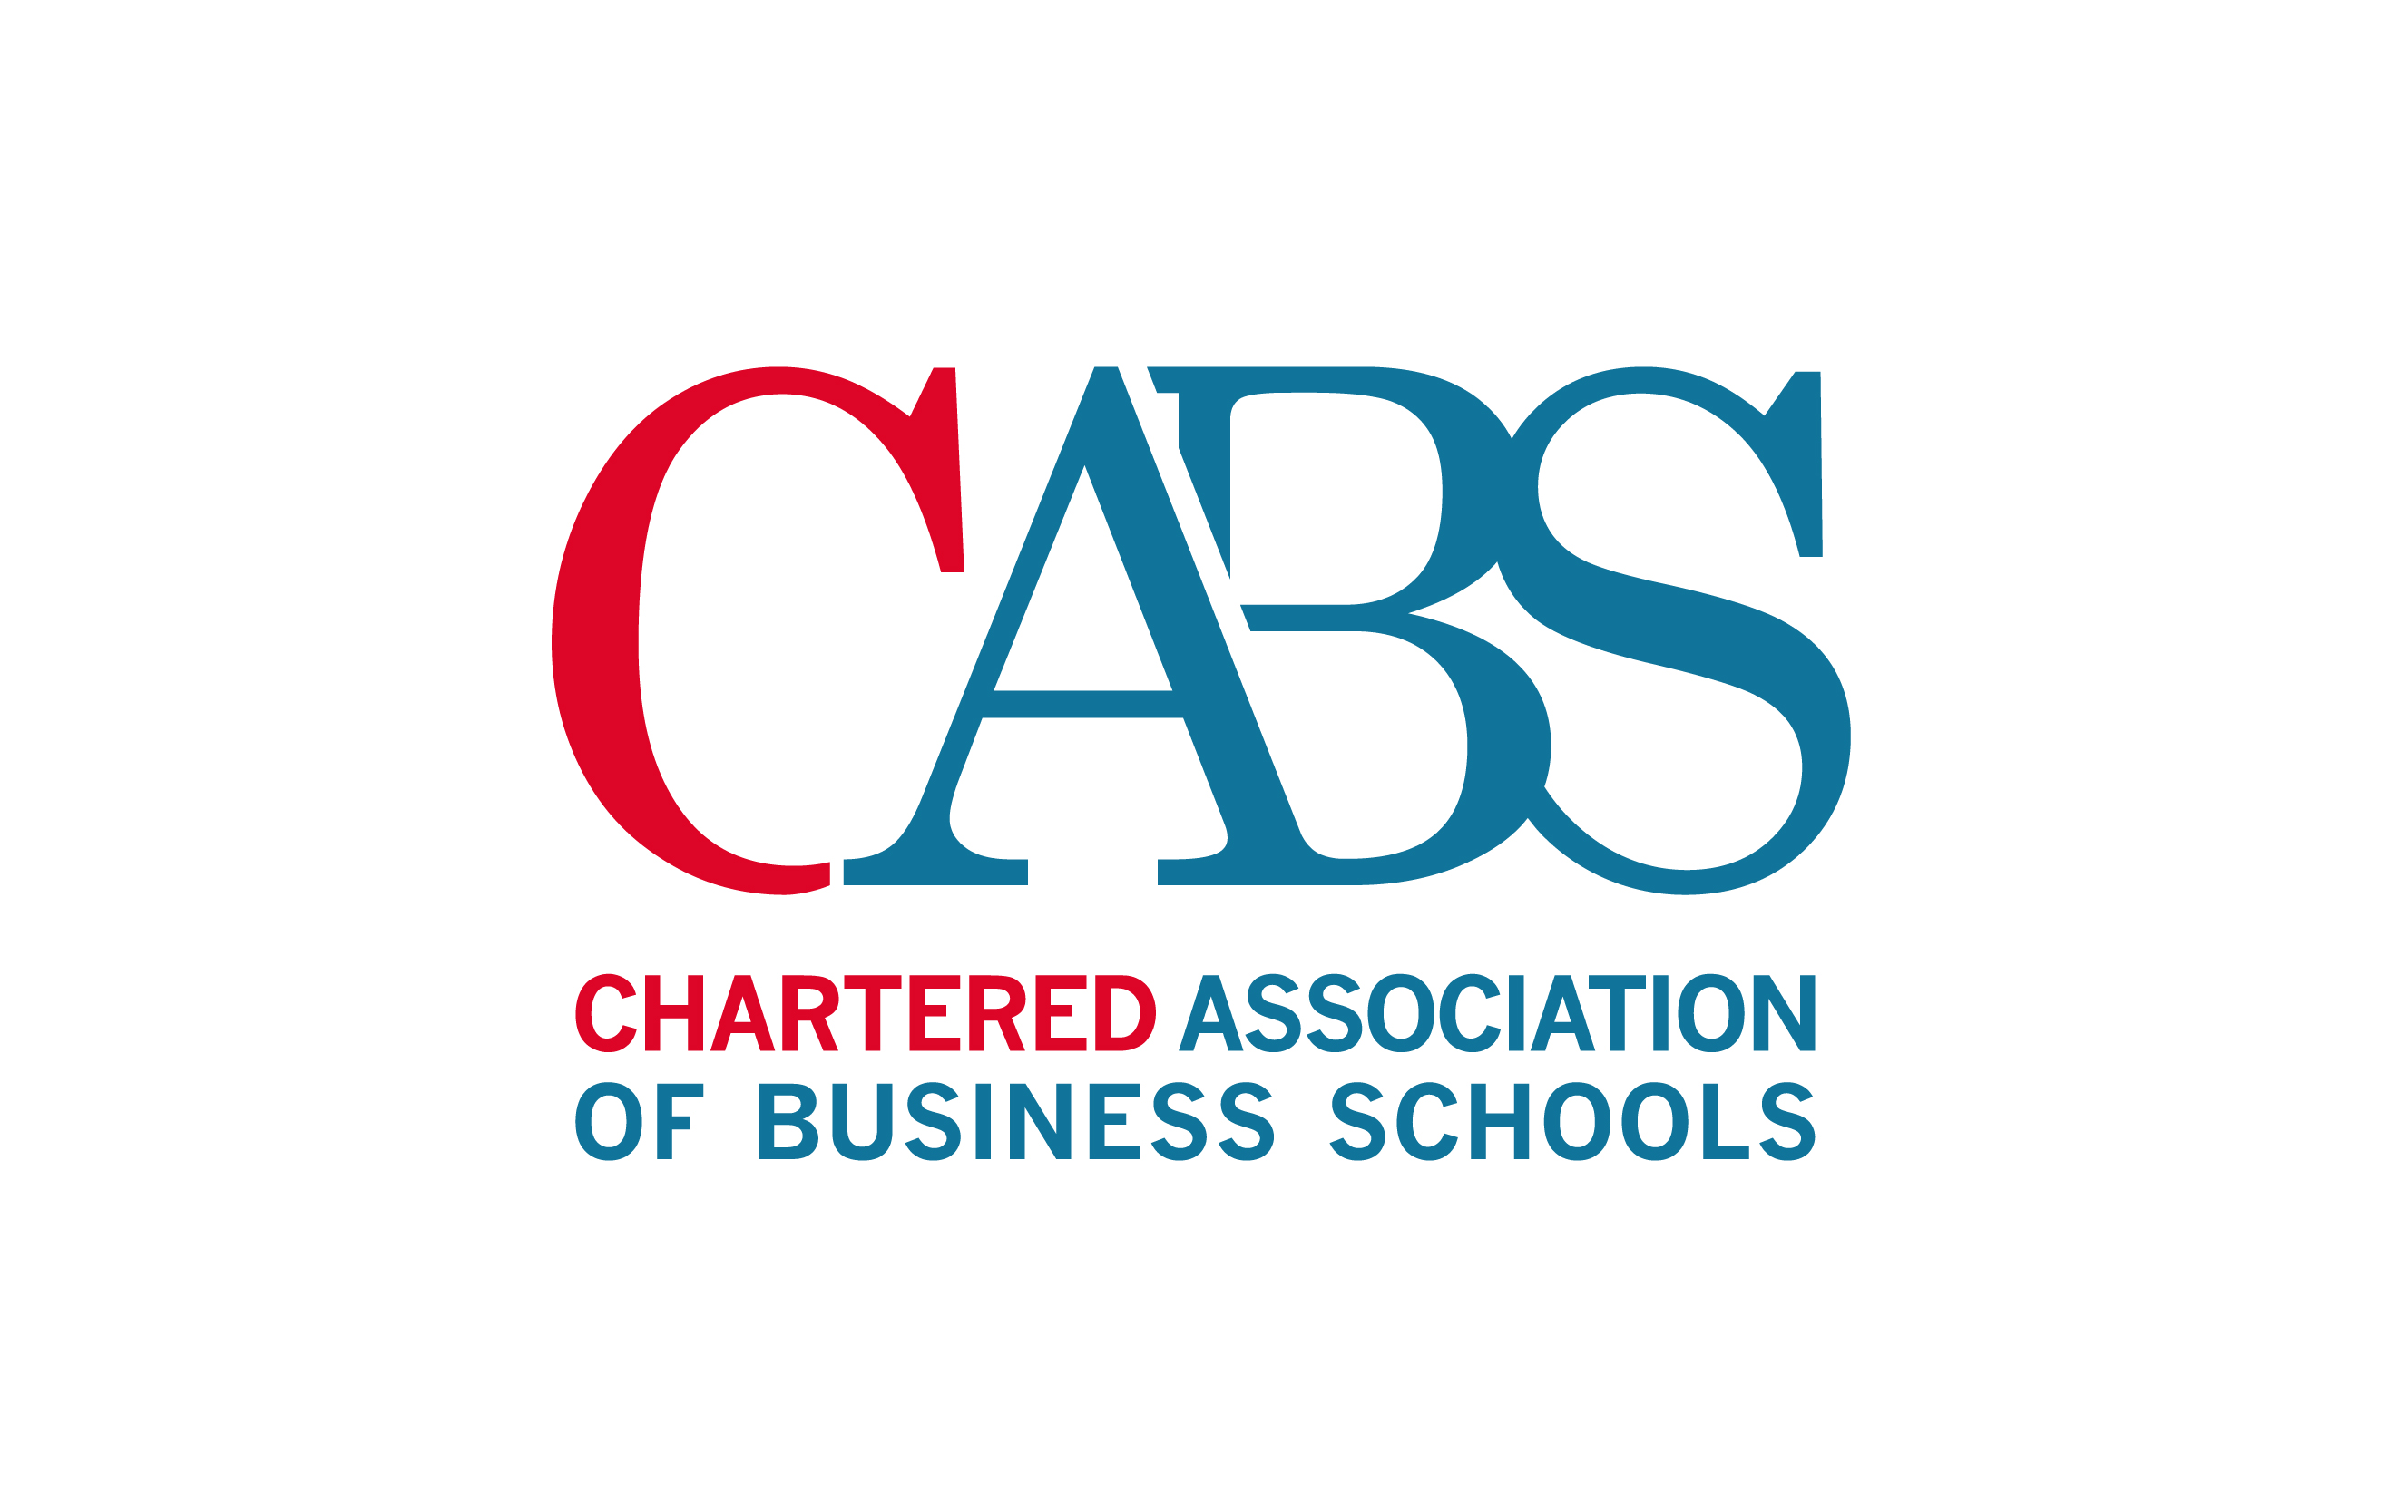 Chartered ABS logo